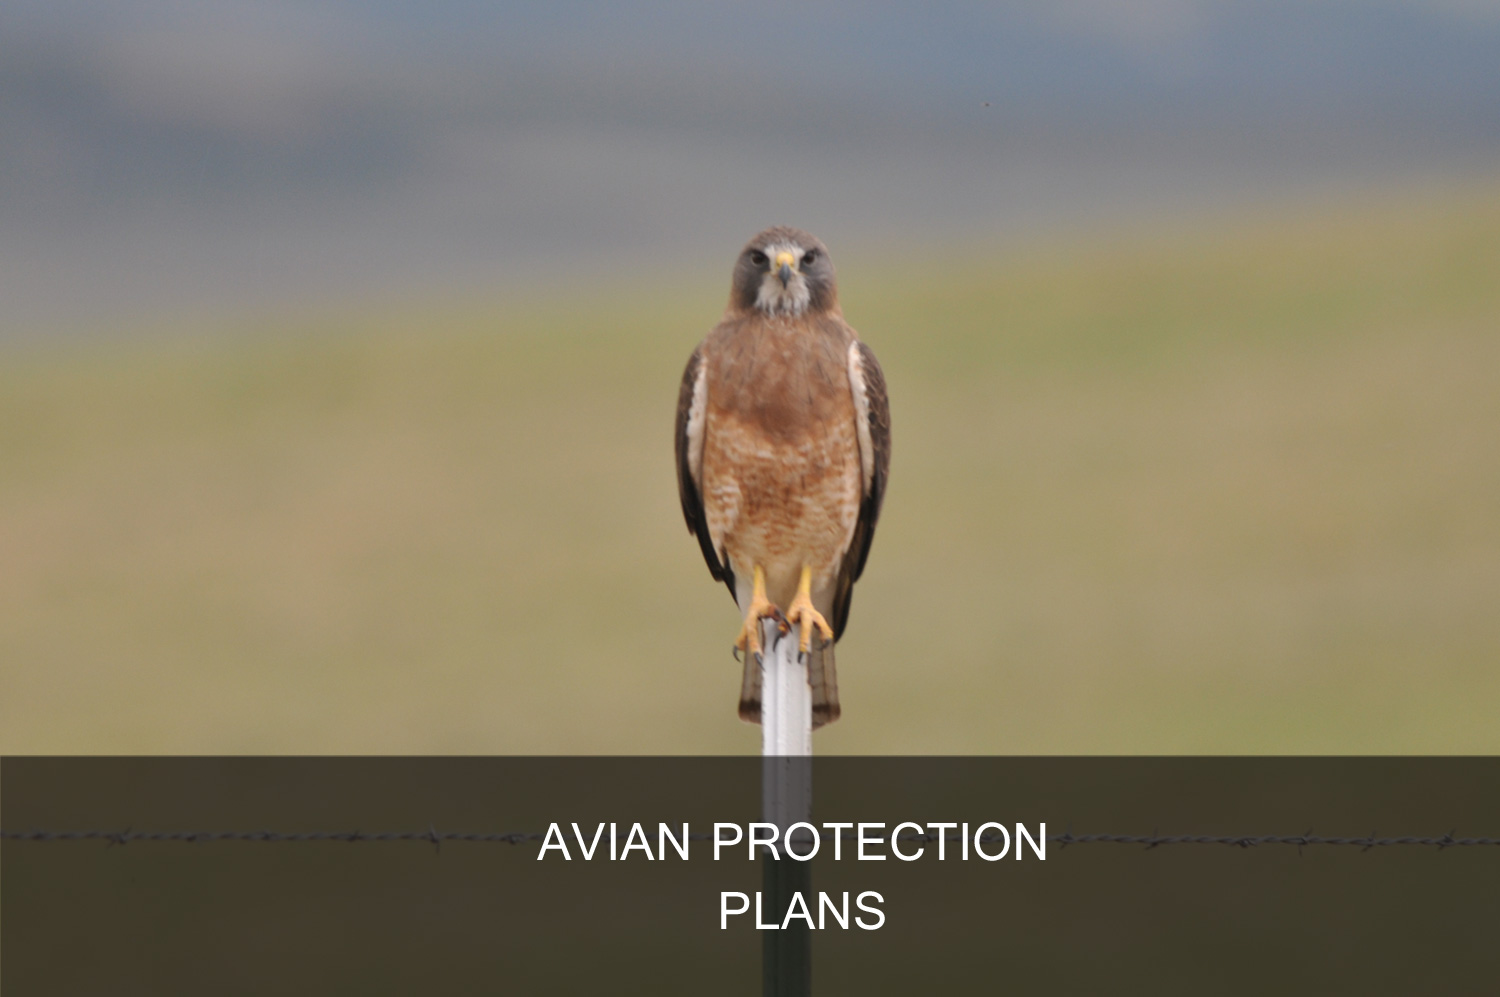 Avian protection plans